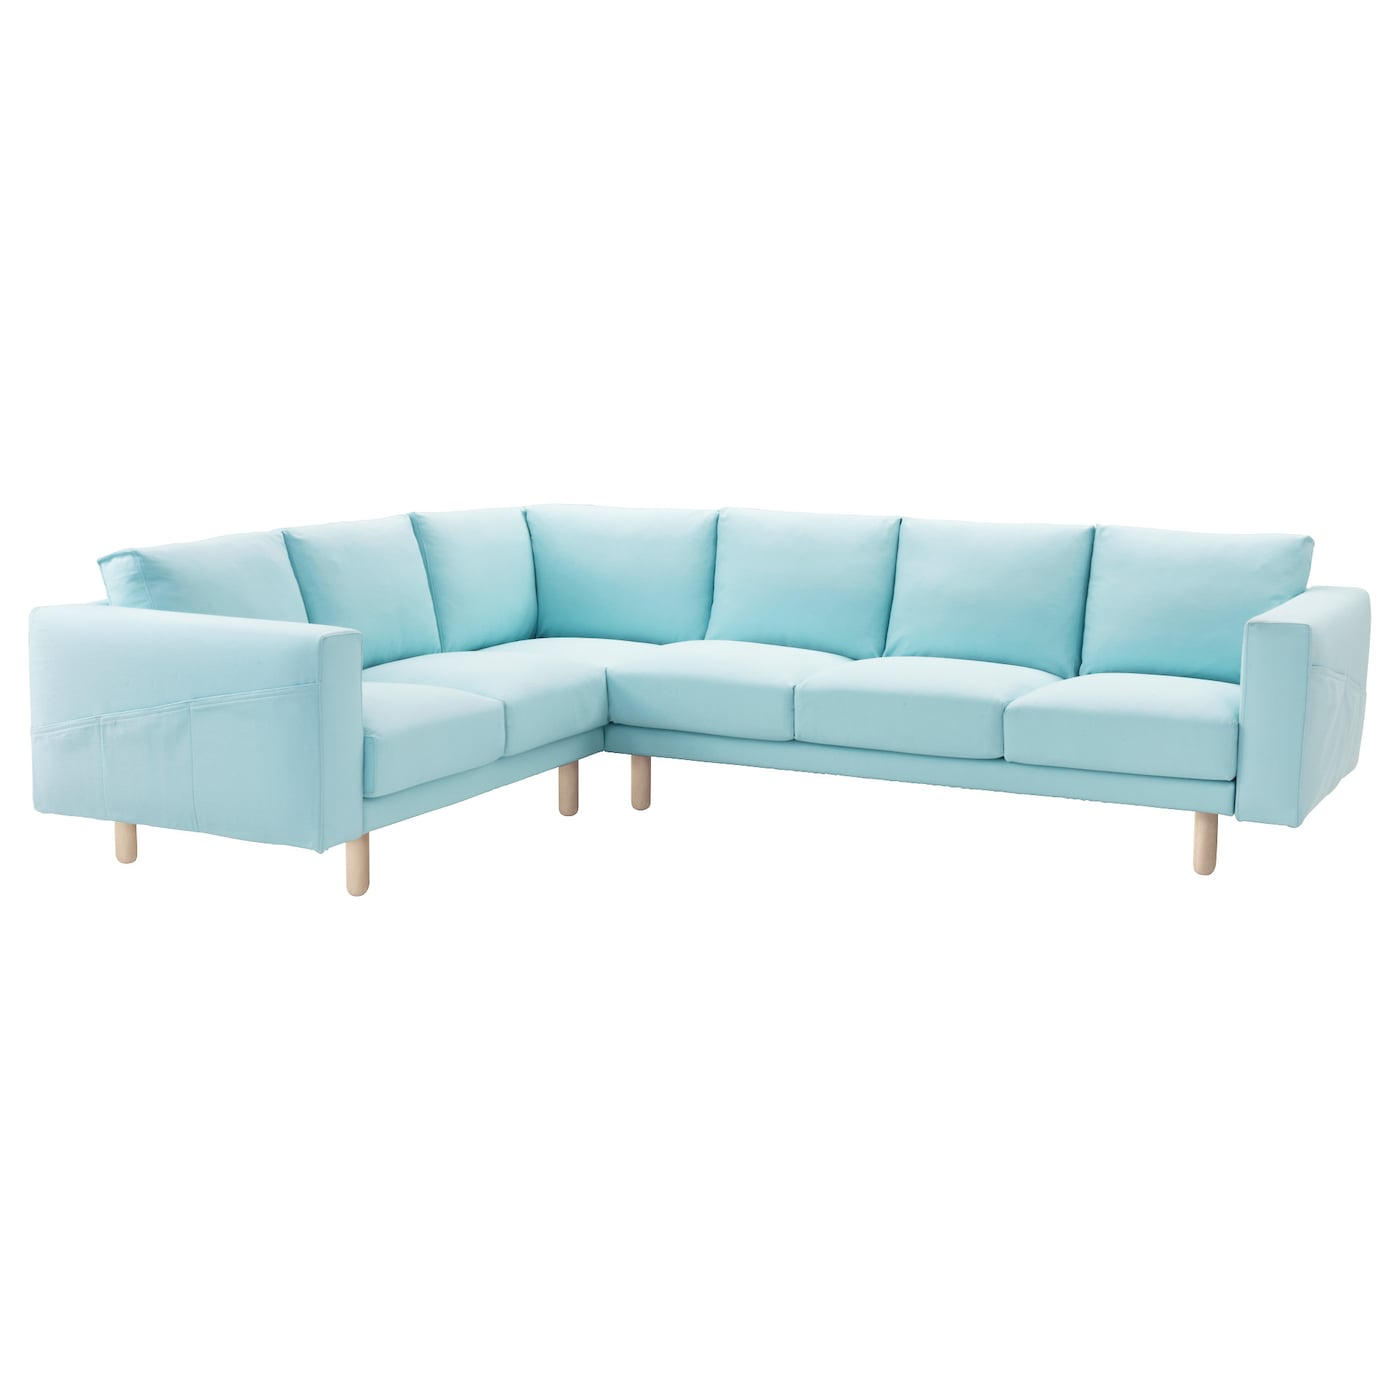 NORSBORG Corner sofa 2 3 3 2 cover Gräsbo light blue IKEA